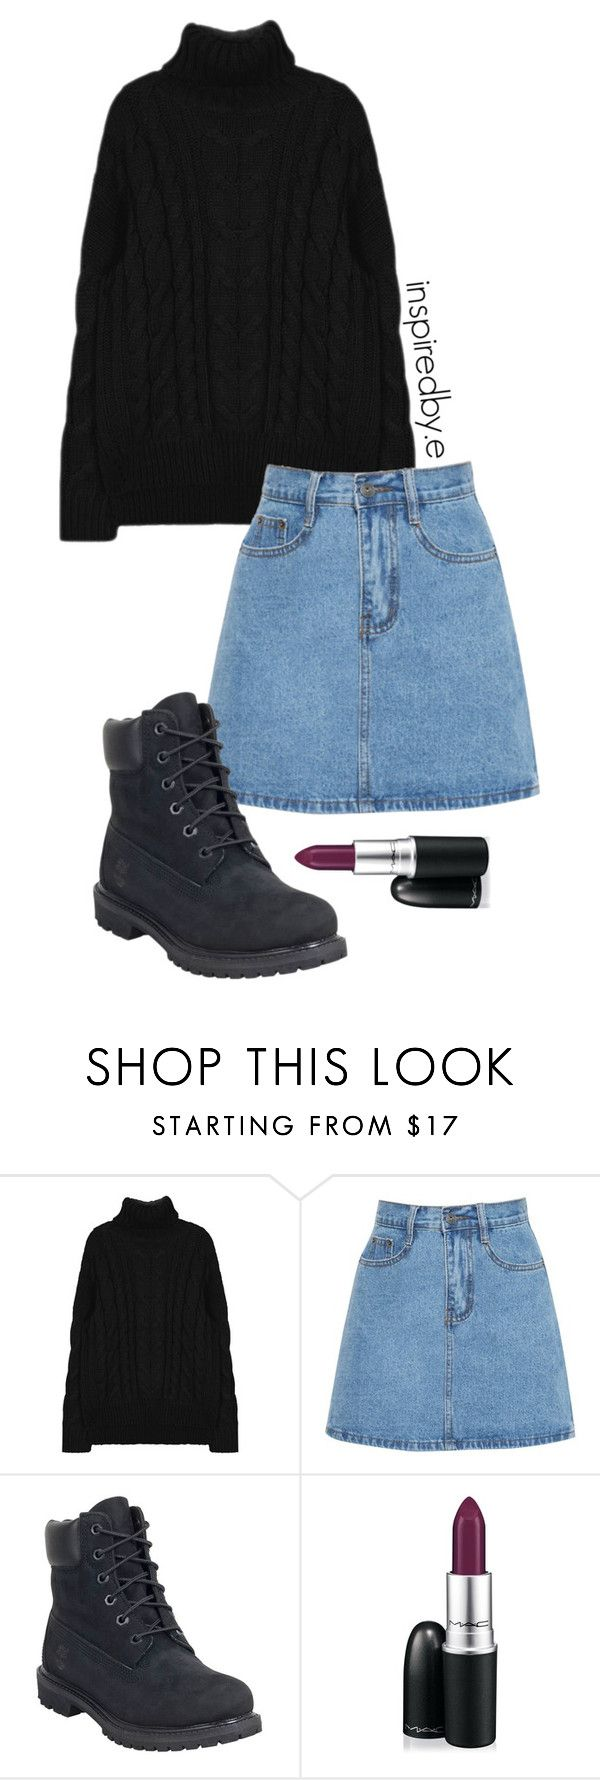 """Name change"" by emmakiis on Polyvore featuring Timberland and MAC Cosmetics"